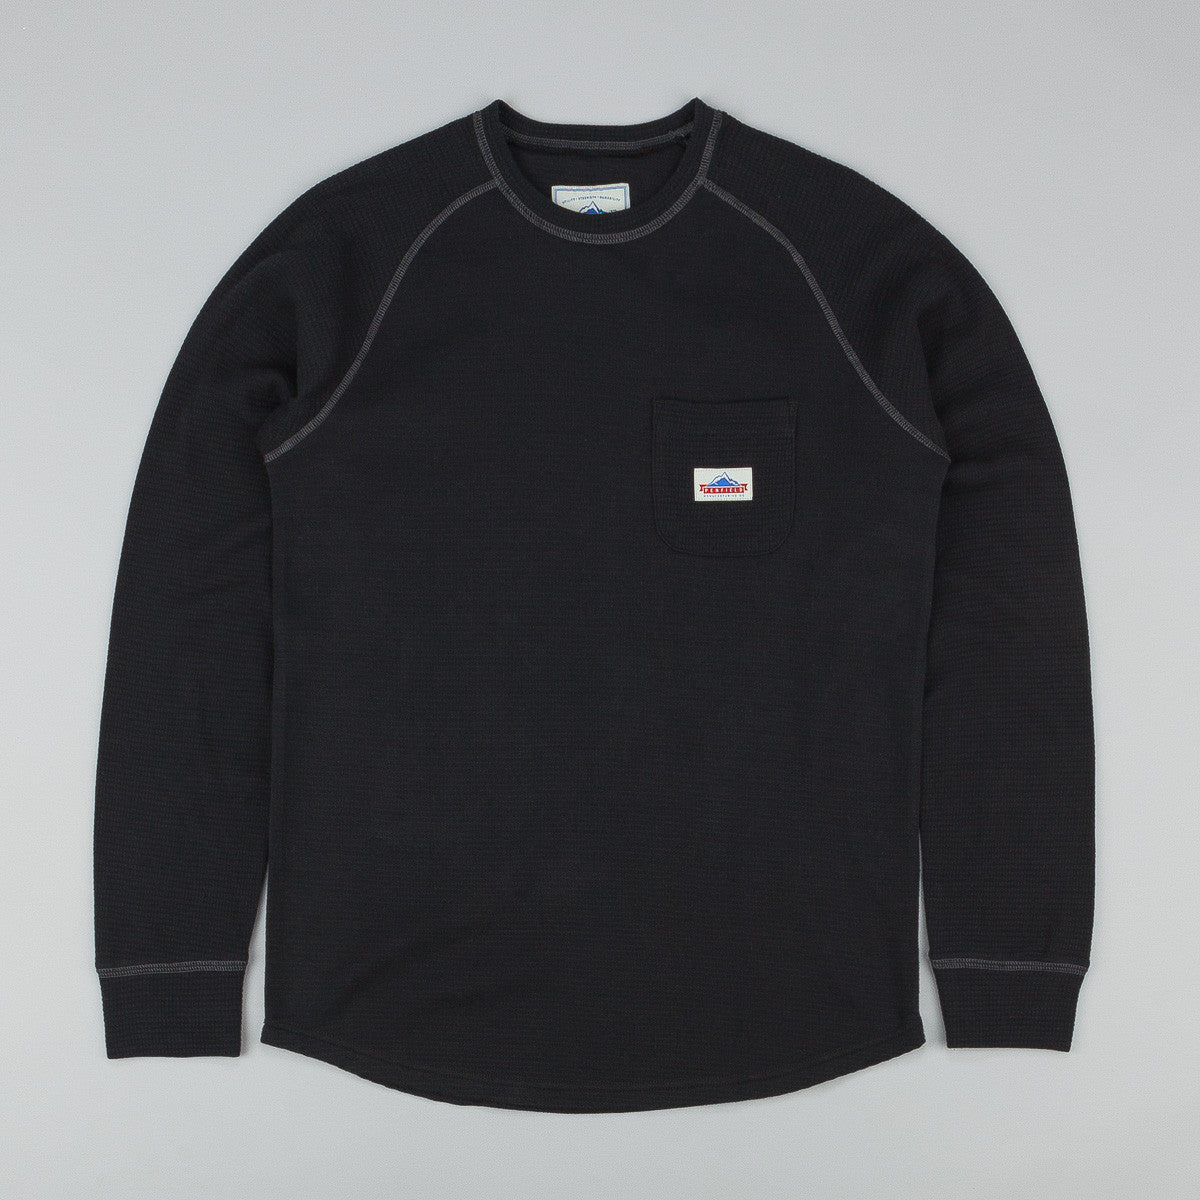 Penfield Easton L/S T-Shirt - Black